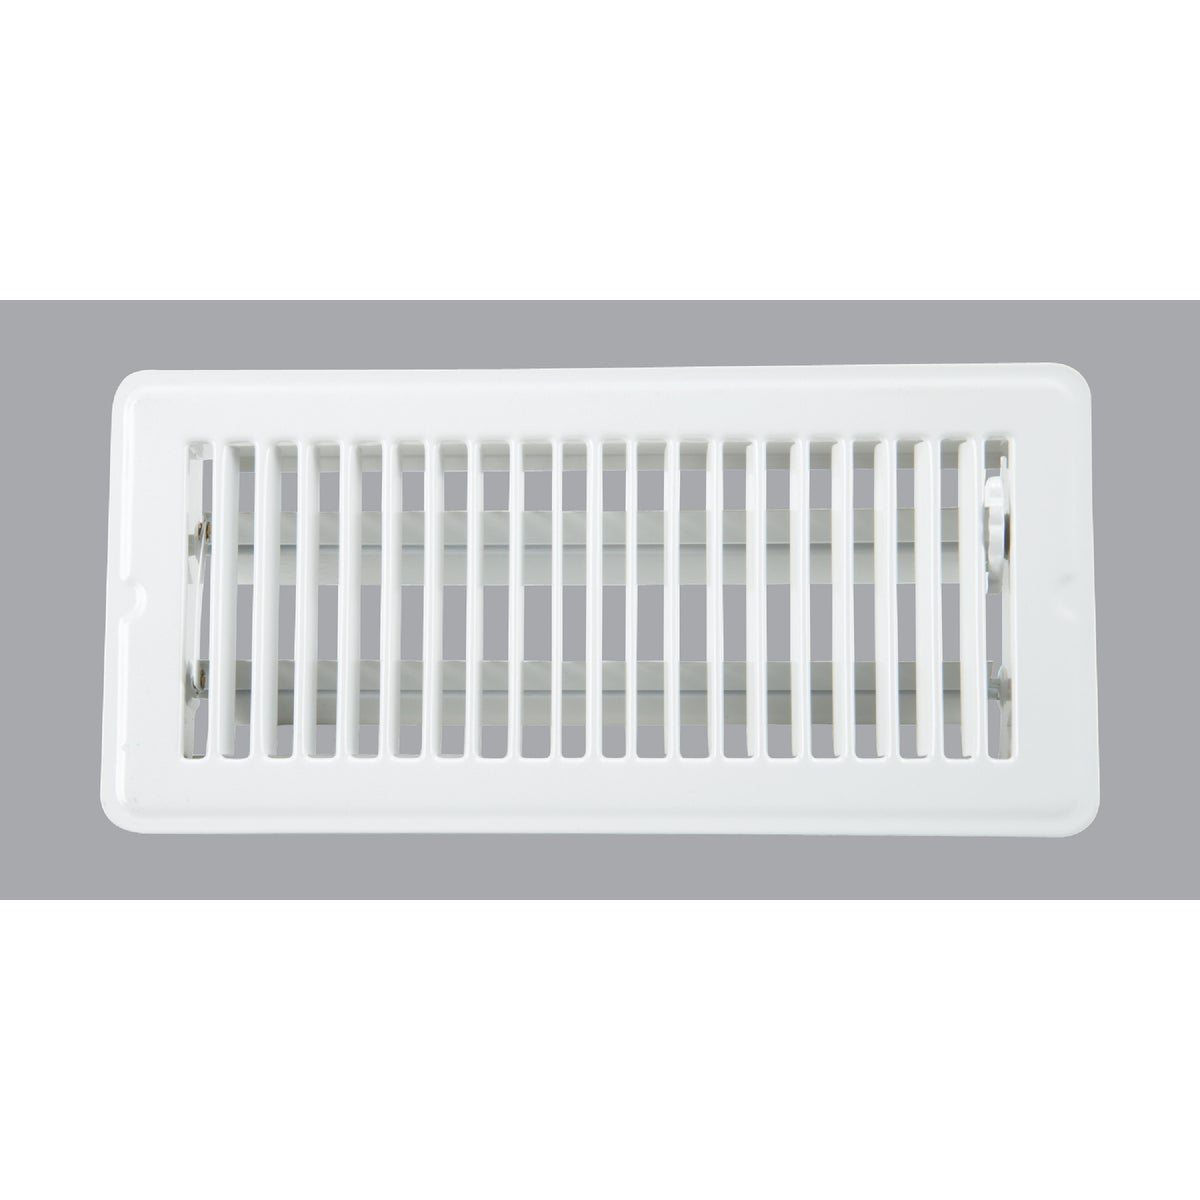 4X10 WHT FLOOR DIFFUSER - 1FL0410WH-NH by Do it Best